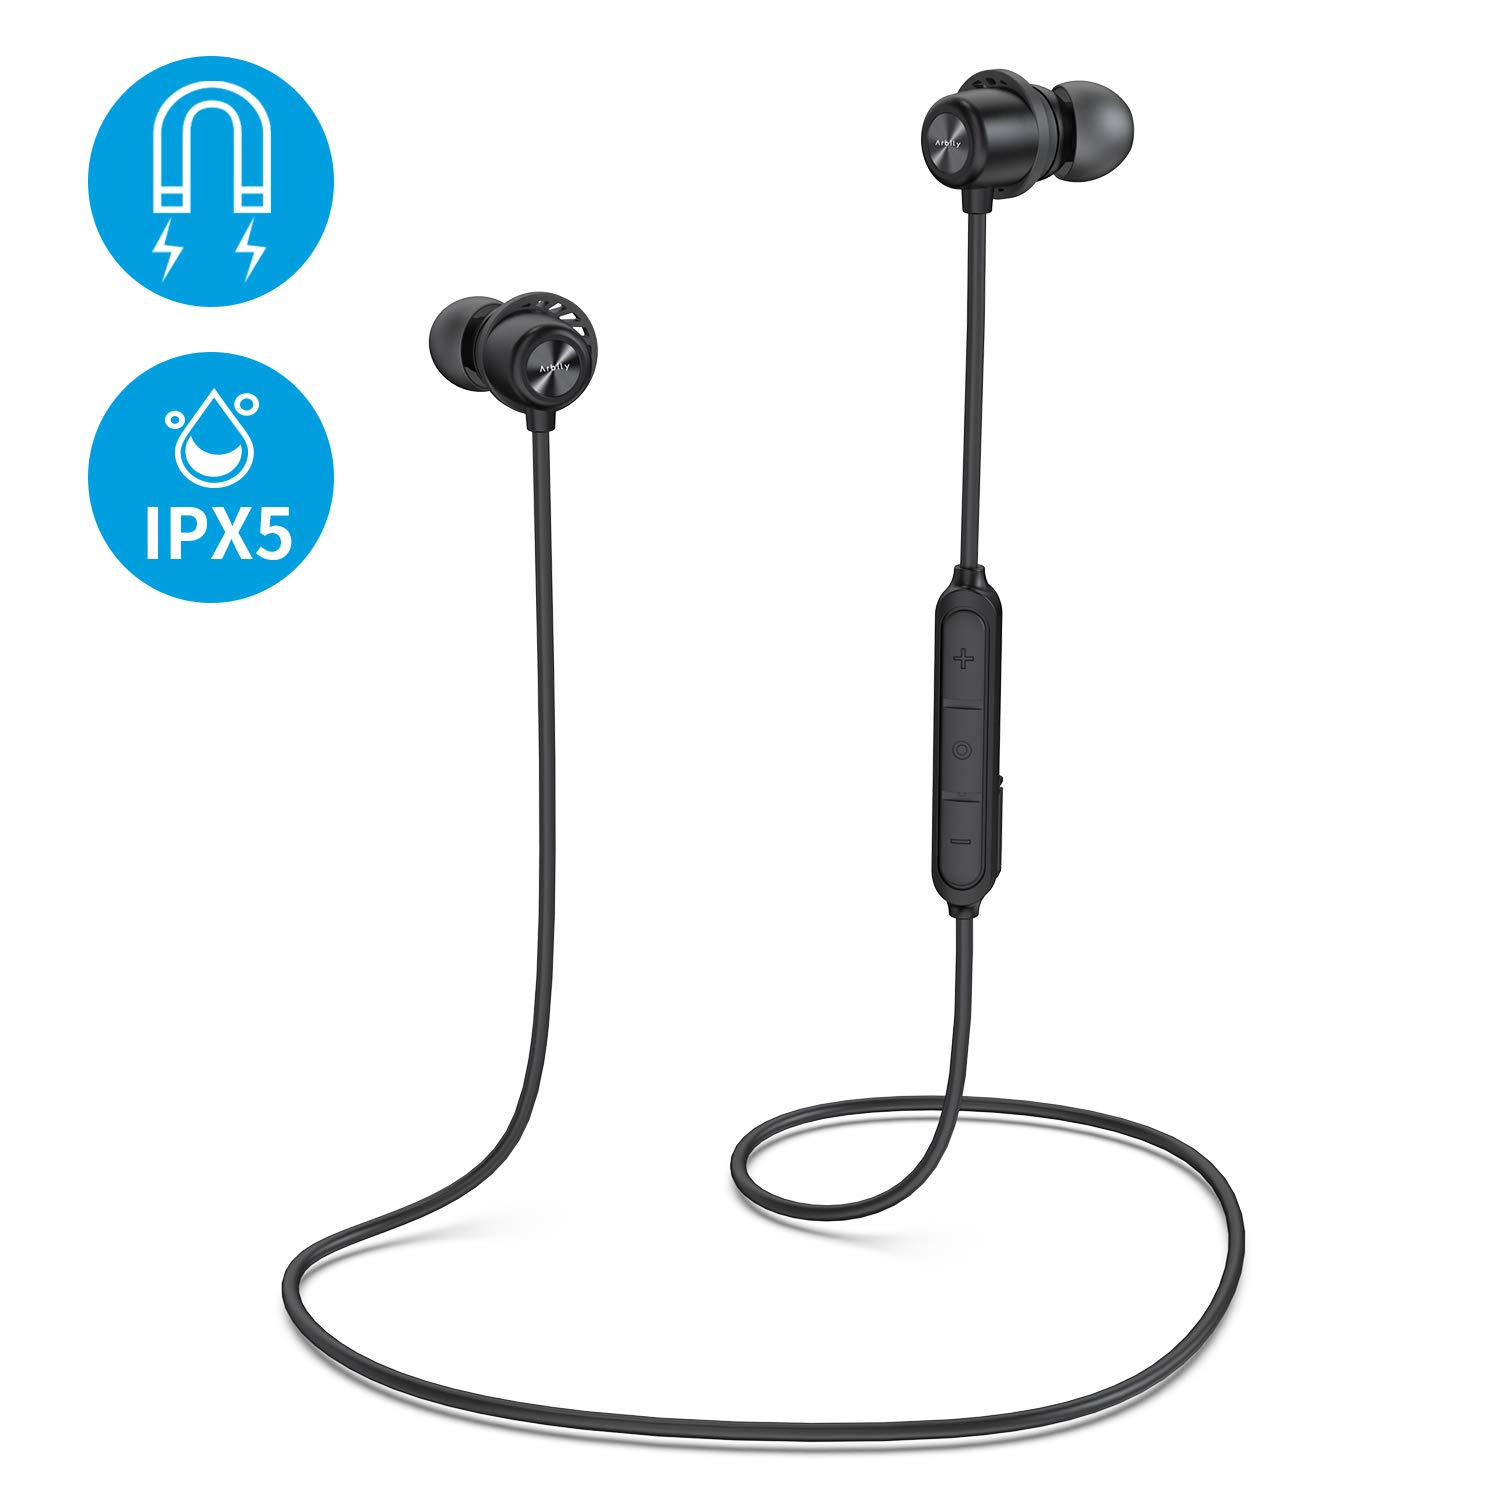 Arbily Bluetooth Earphones(SP604) Launched, Review, Specs